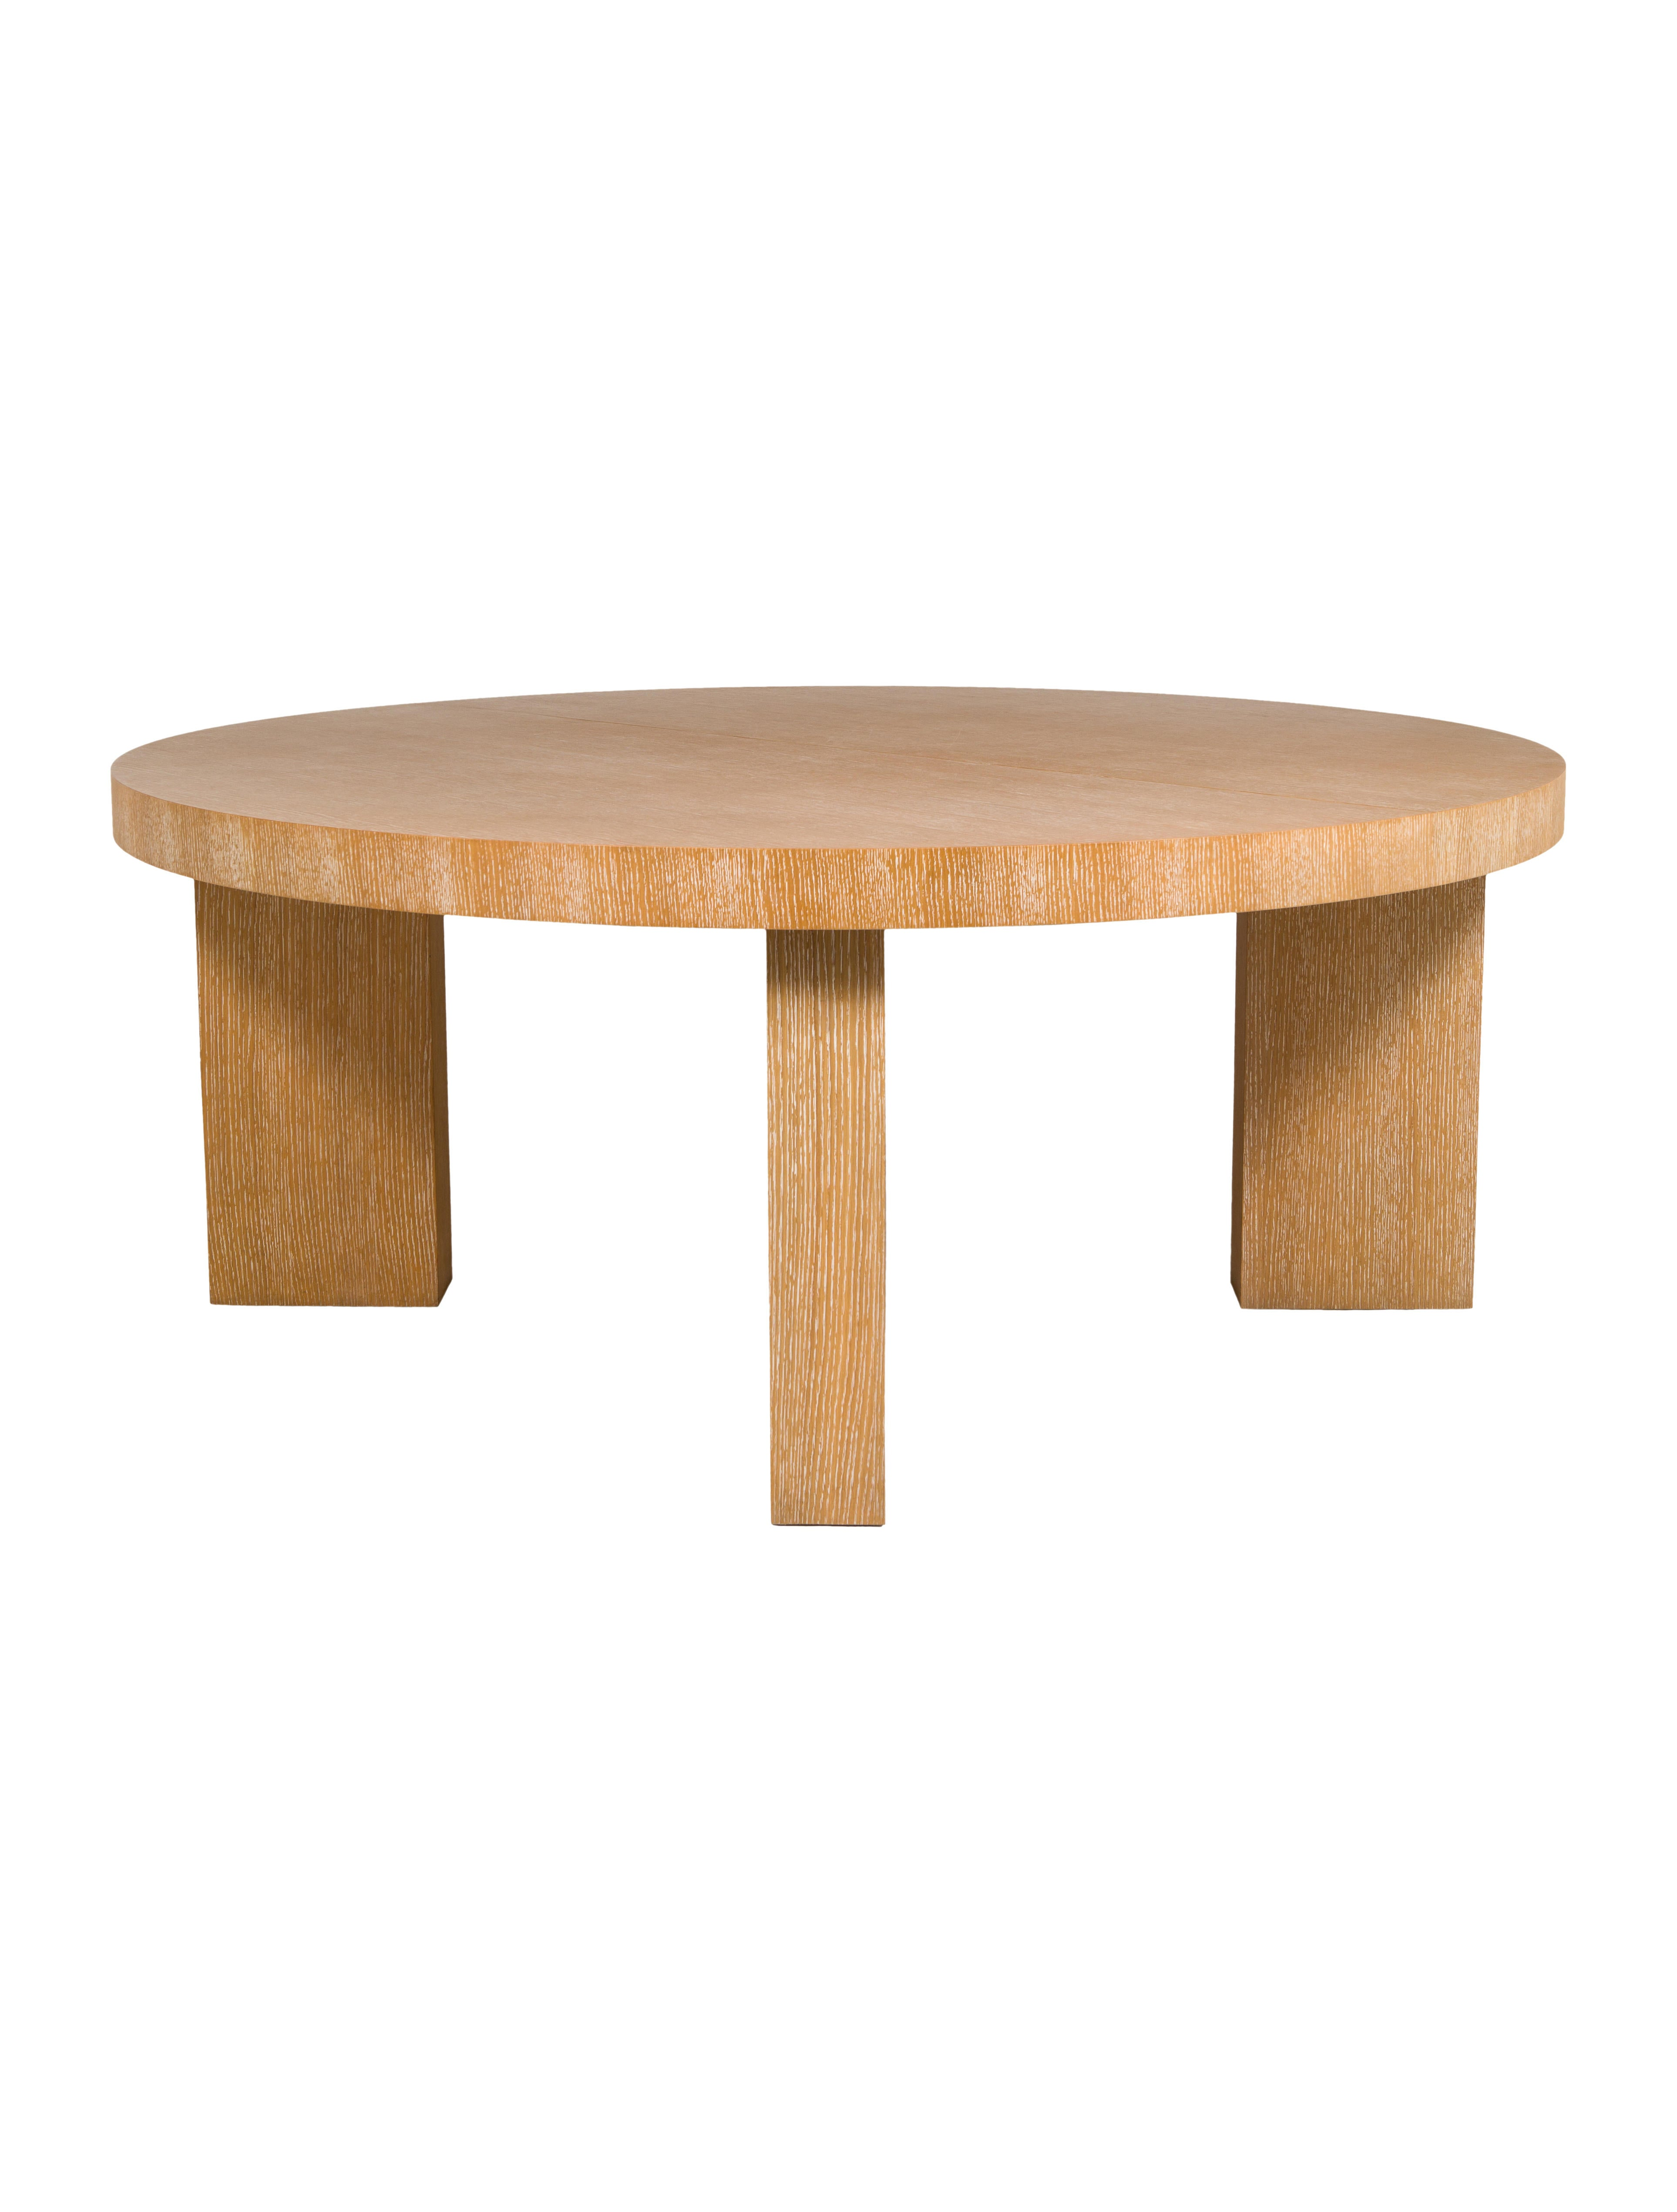 Armani Casa Modern Dining Table - Furniture - ACASA20036 ...